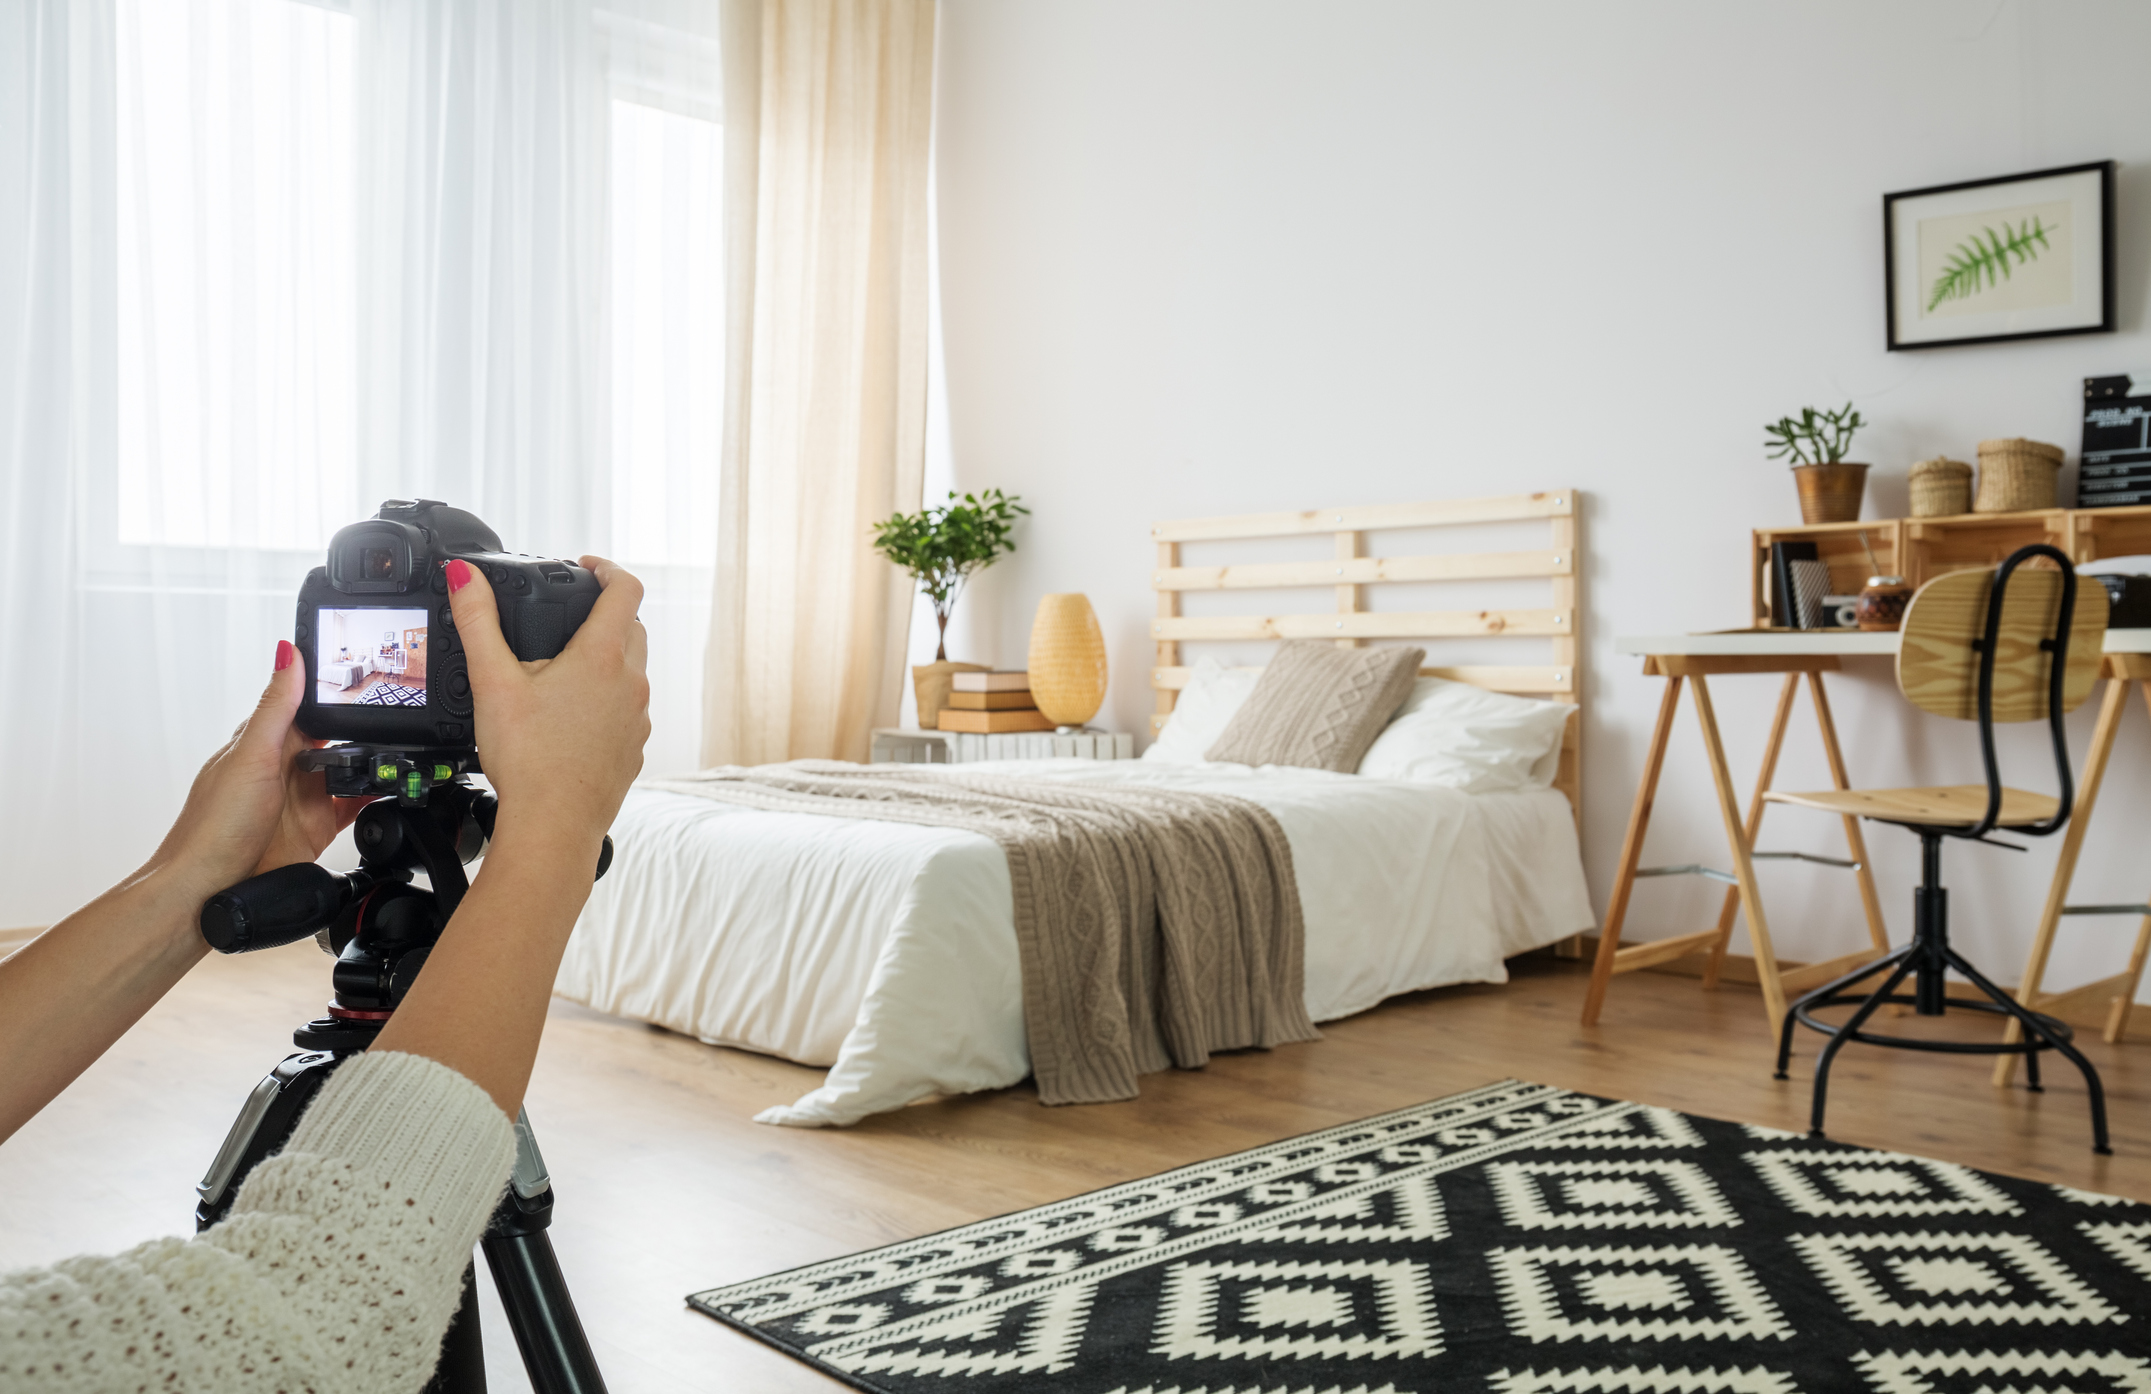 Stock photo of a photographer taking photos of a bedroom